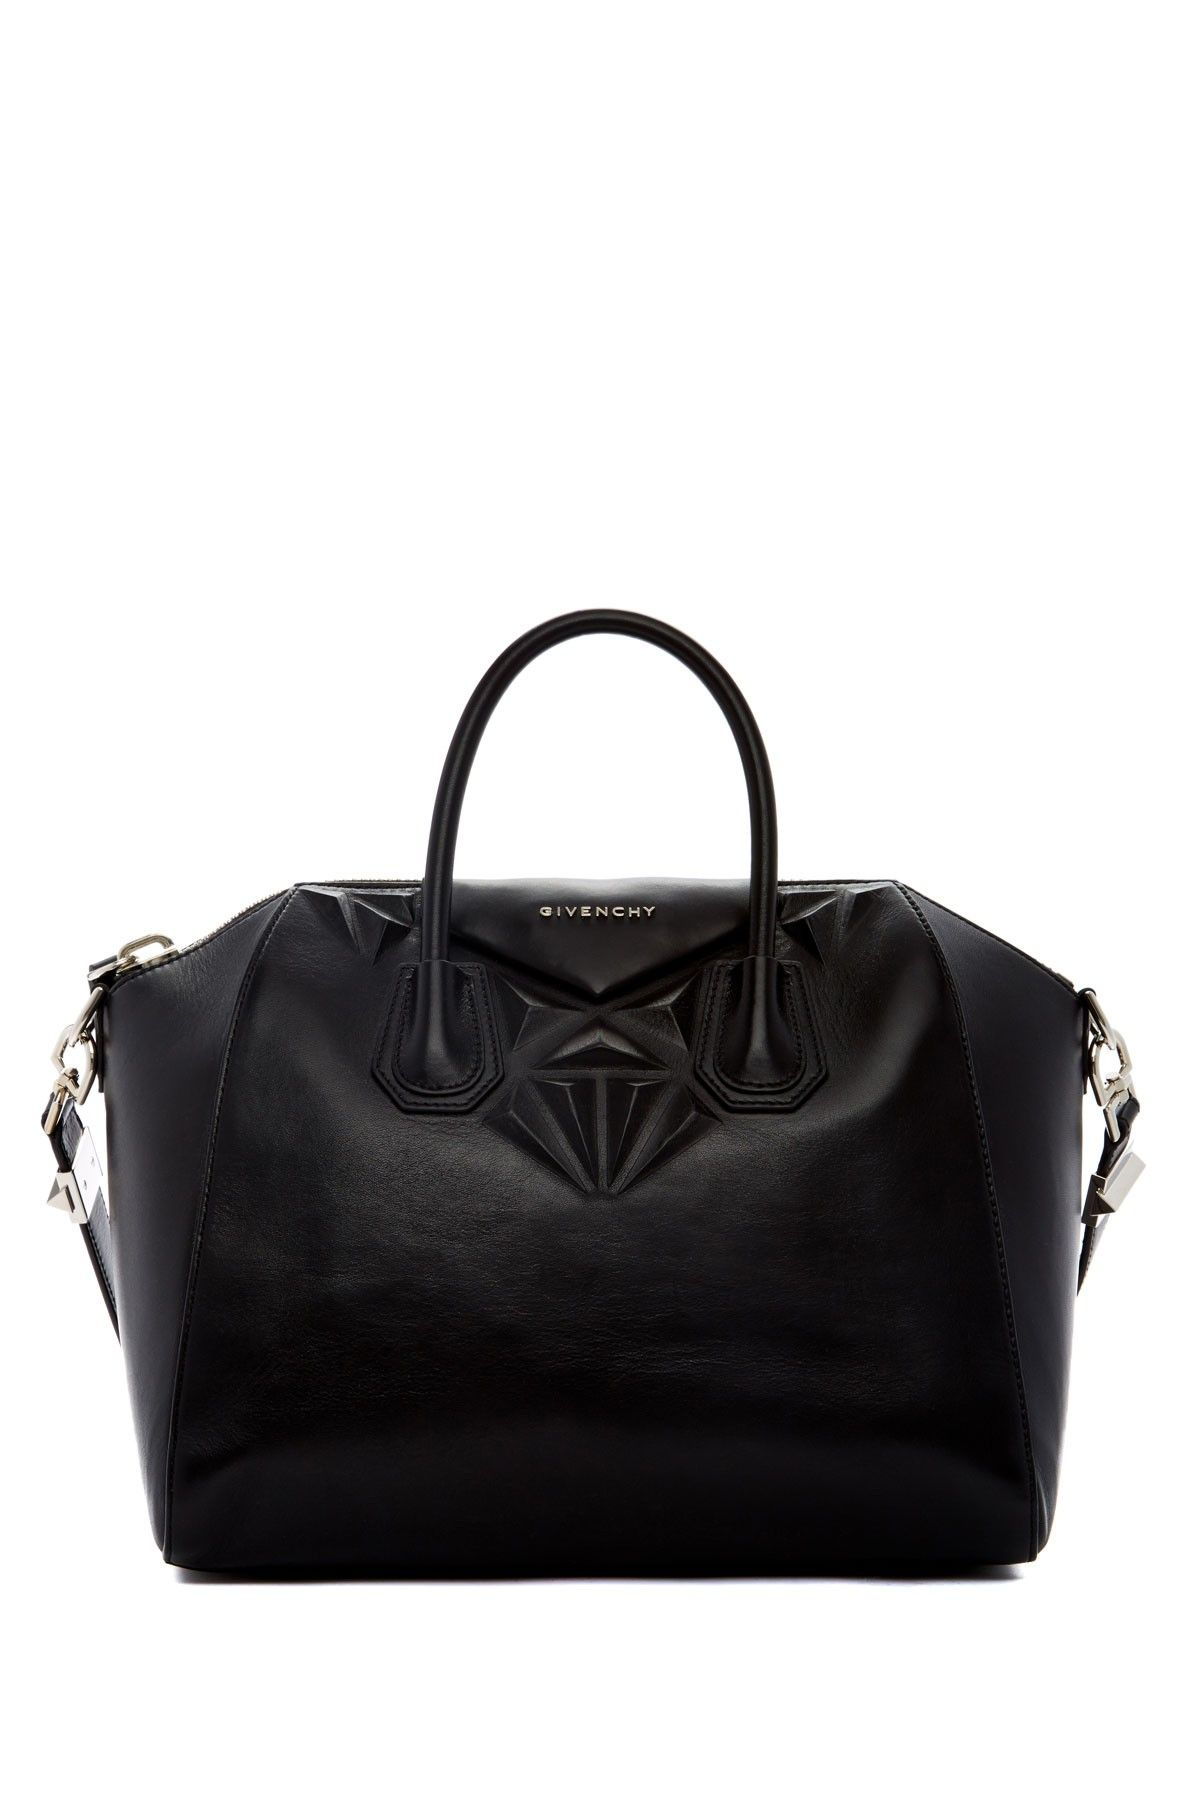 ba775a802447 ShopStyle(ショップスタイル): Givenchy Women's Antigona Large Bag | dream closet* |  スタイル、バッグ、ショップ